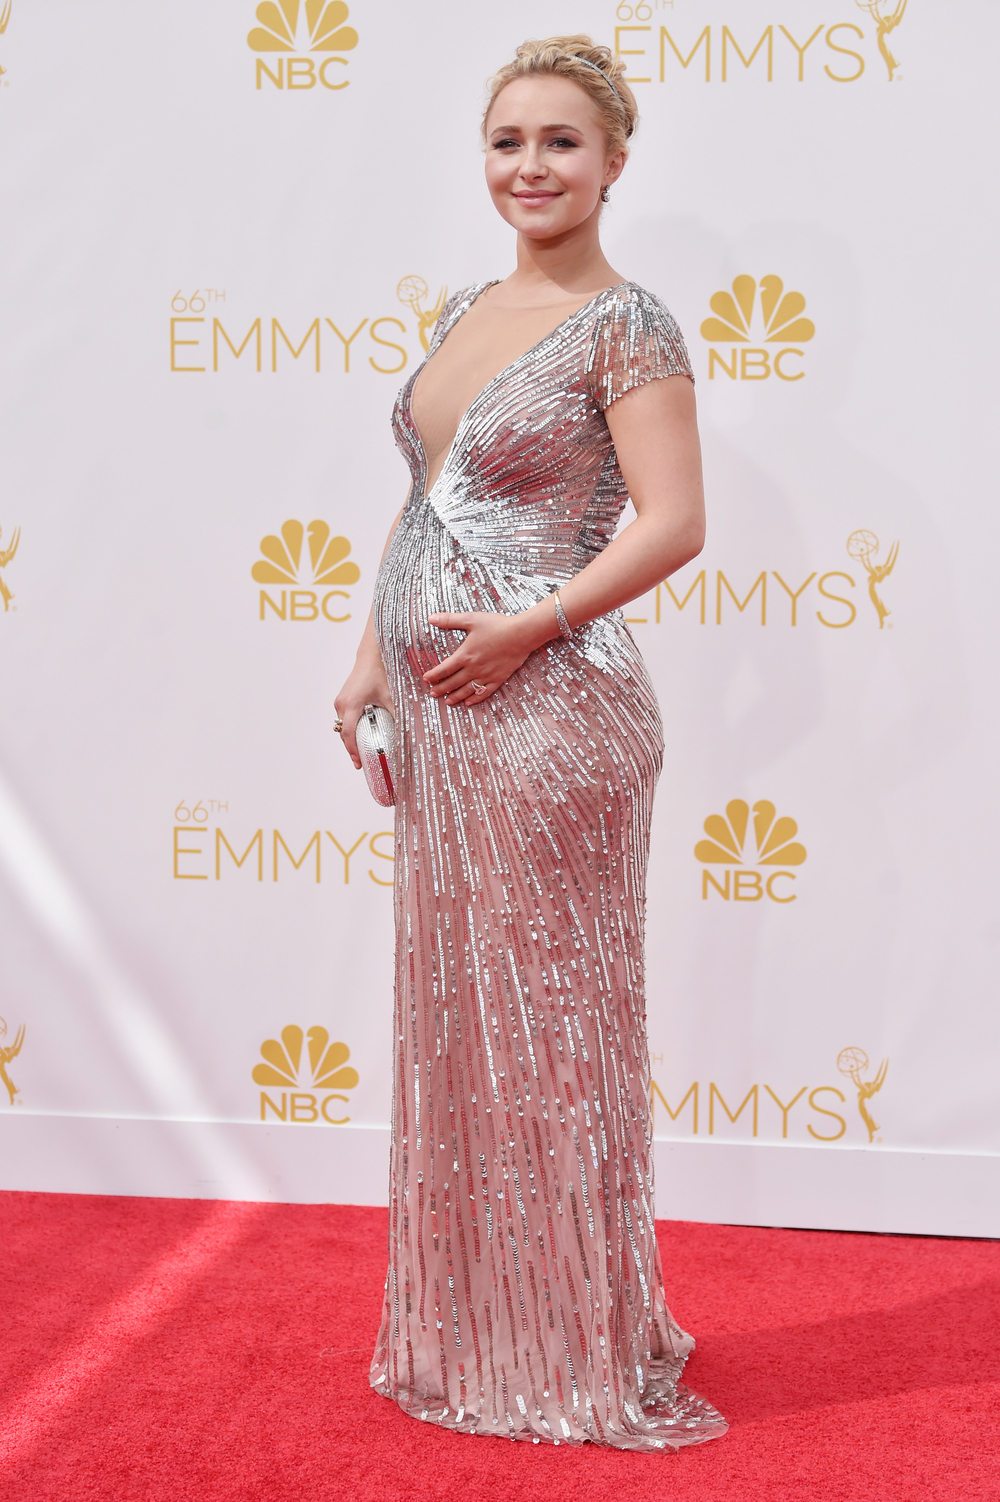 Pregnant Hayden Panettiere Reveals Baby's Gender, Flaunts Baby Bump (VIDEO)